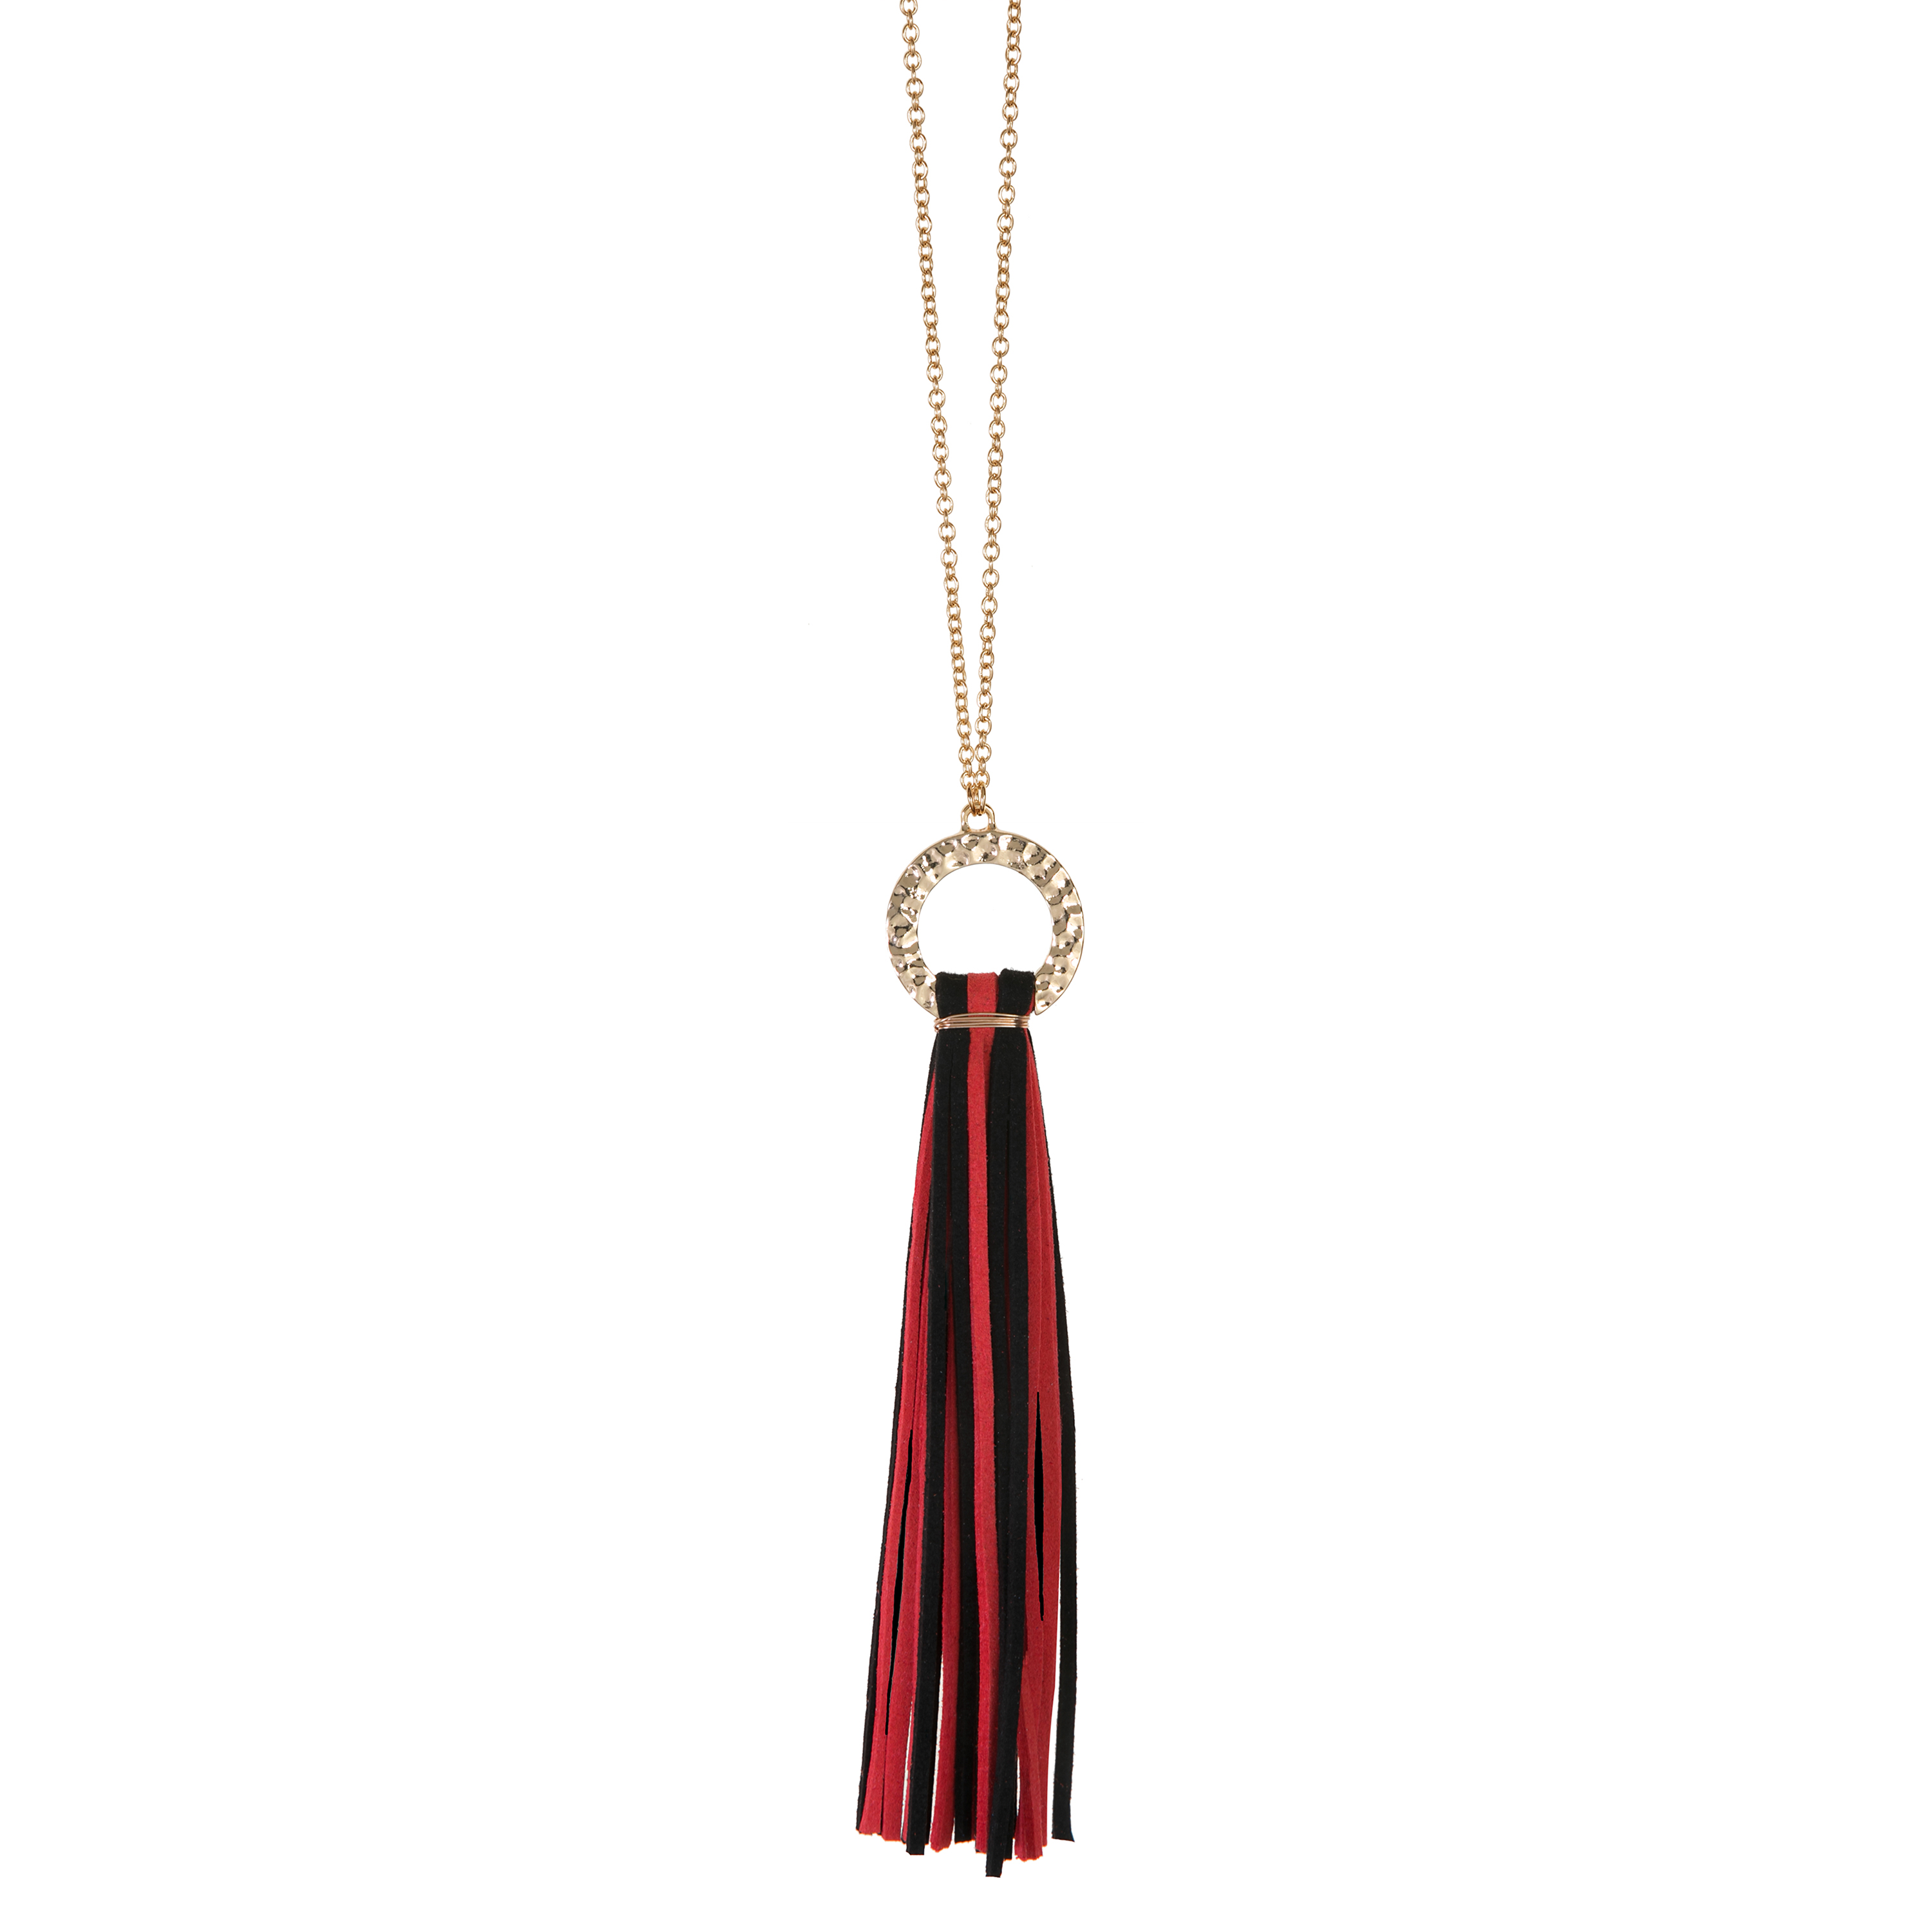 tassel blush designs tasselnecklace products backstory necklace